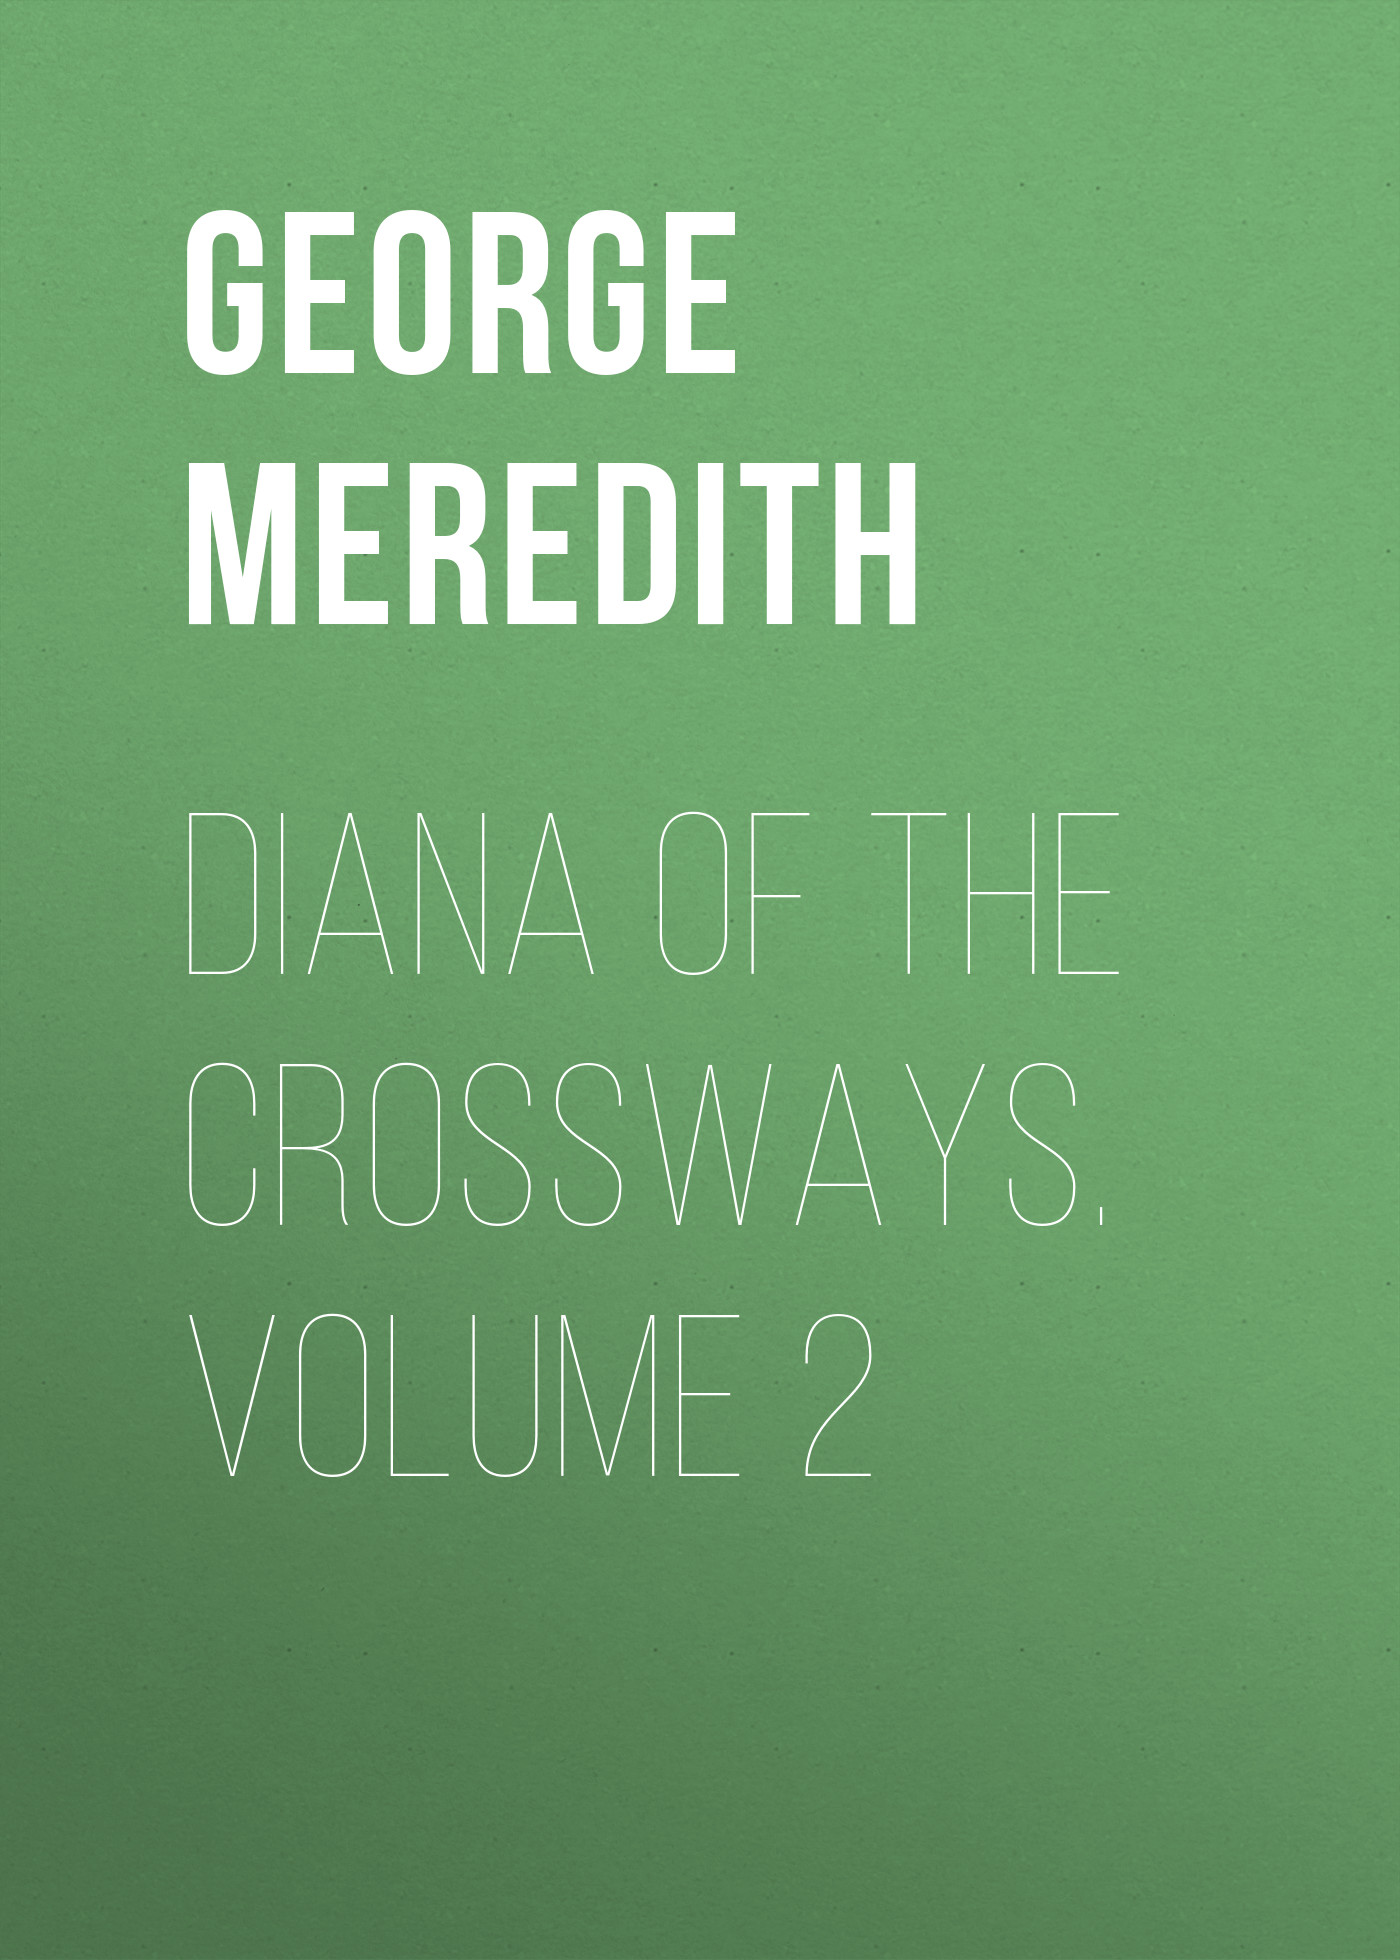 лучшая цена George Meredith Diana of the Crossways. Volume 2